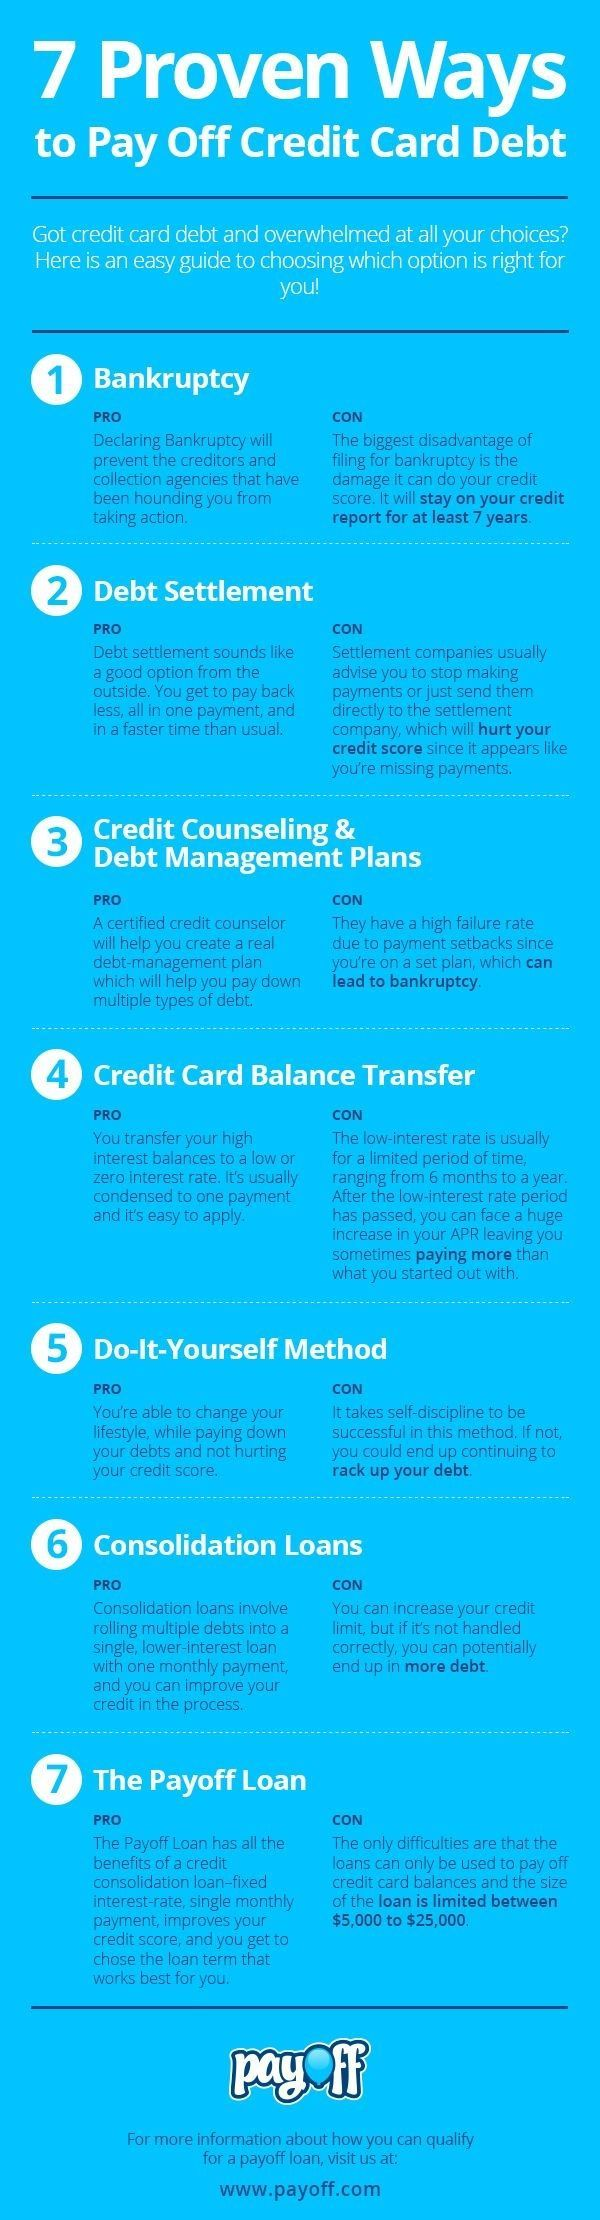 Need help sticking to a budget and whittling down your debt? Payoff can be your credit card refinancing solution and so much more. Take steps now to improve your credit score and reduce your interest payments.  http://www.payoff.com/?utm_source=pinterest&utm_medium=cpc&utm_campaign=2015_04_SOC_PIN&utm_content=9.36P